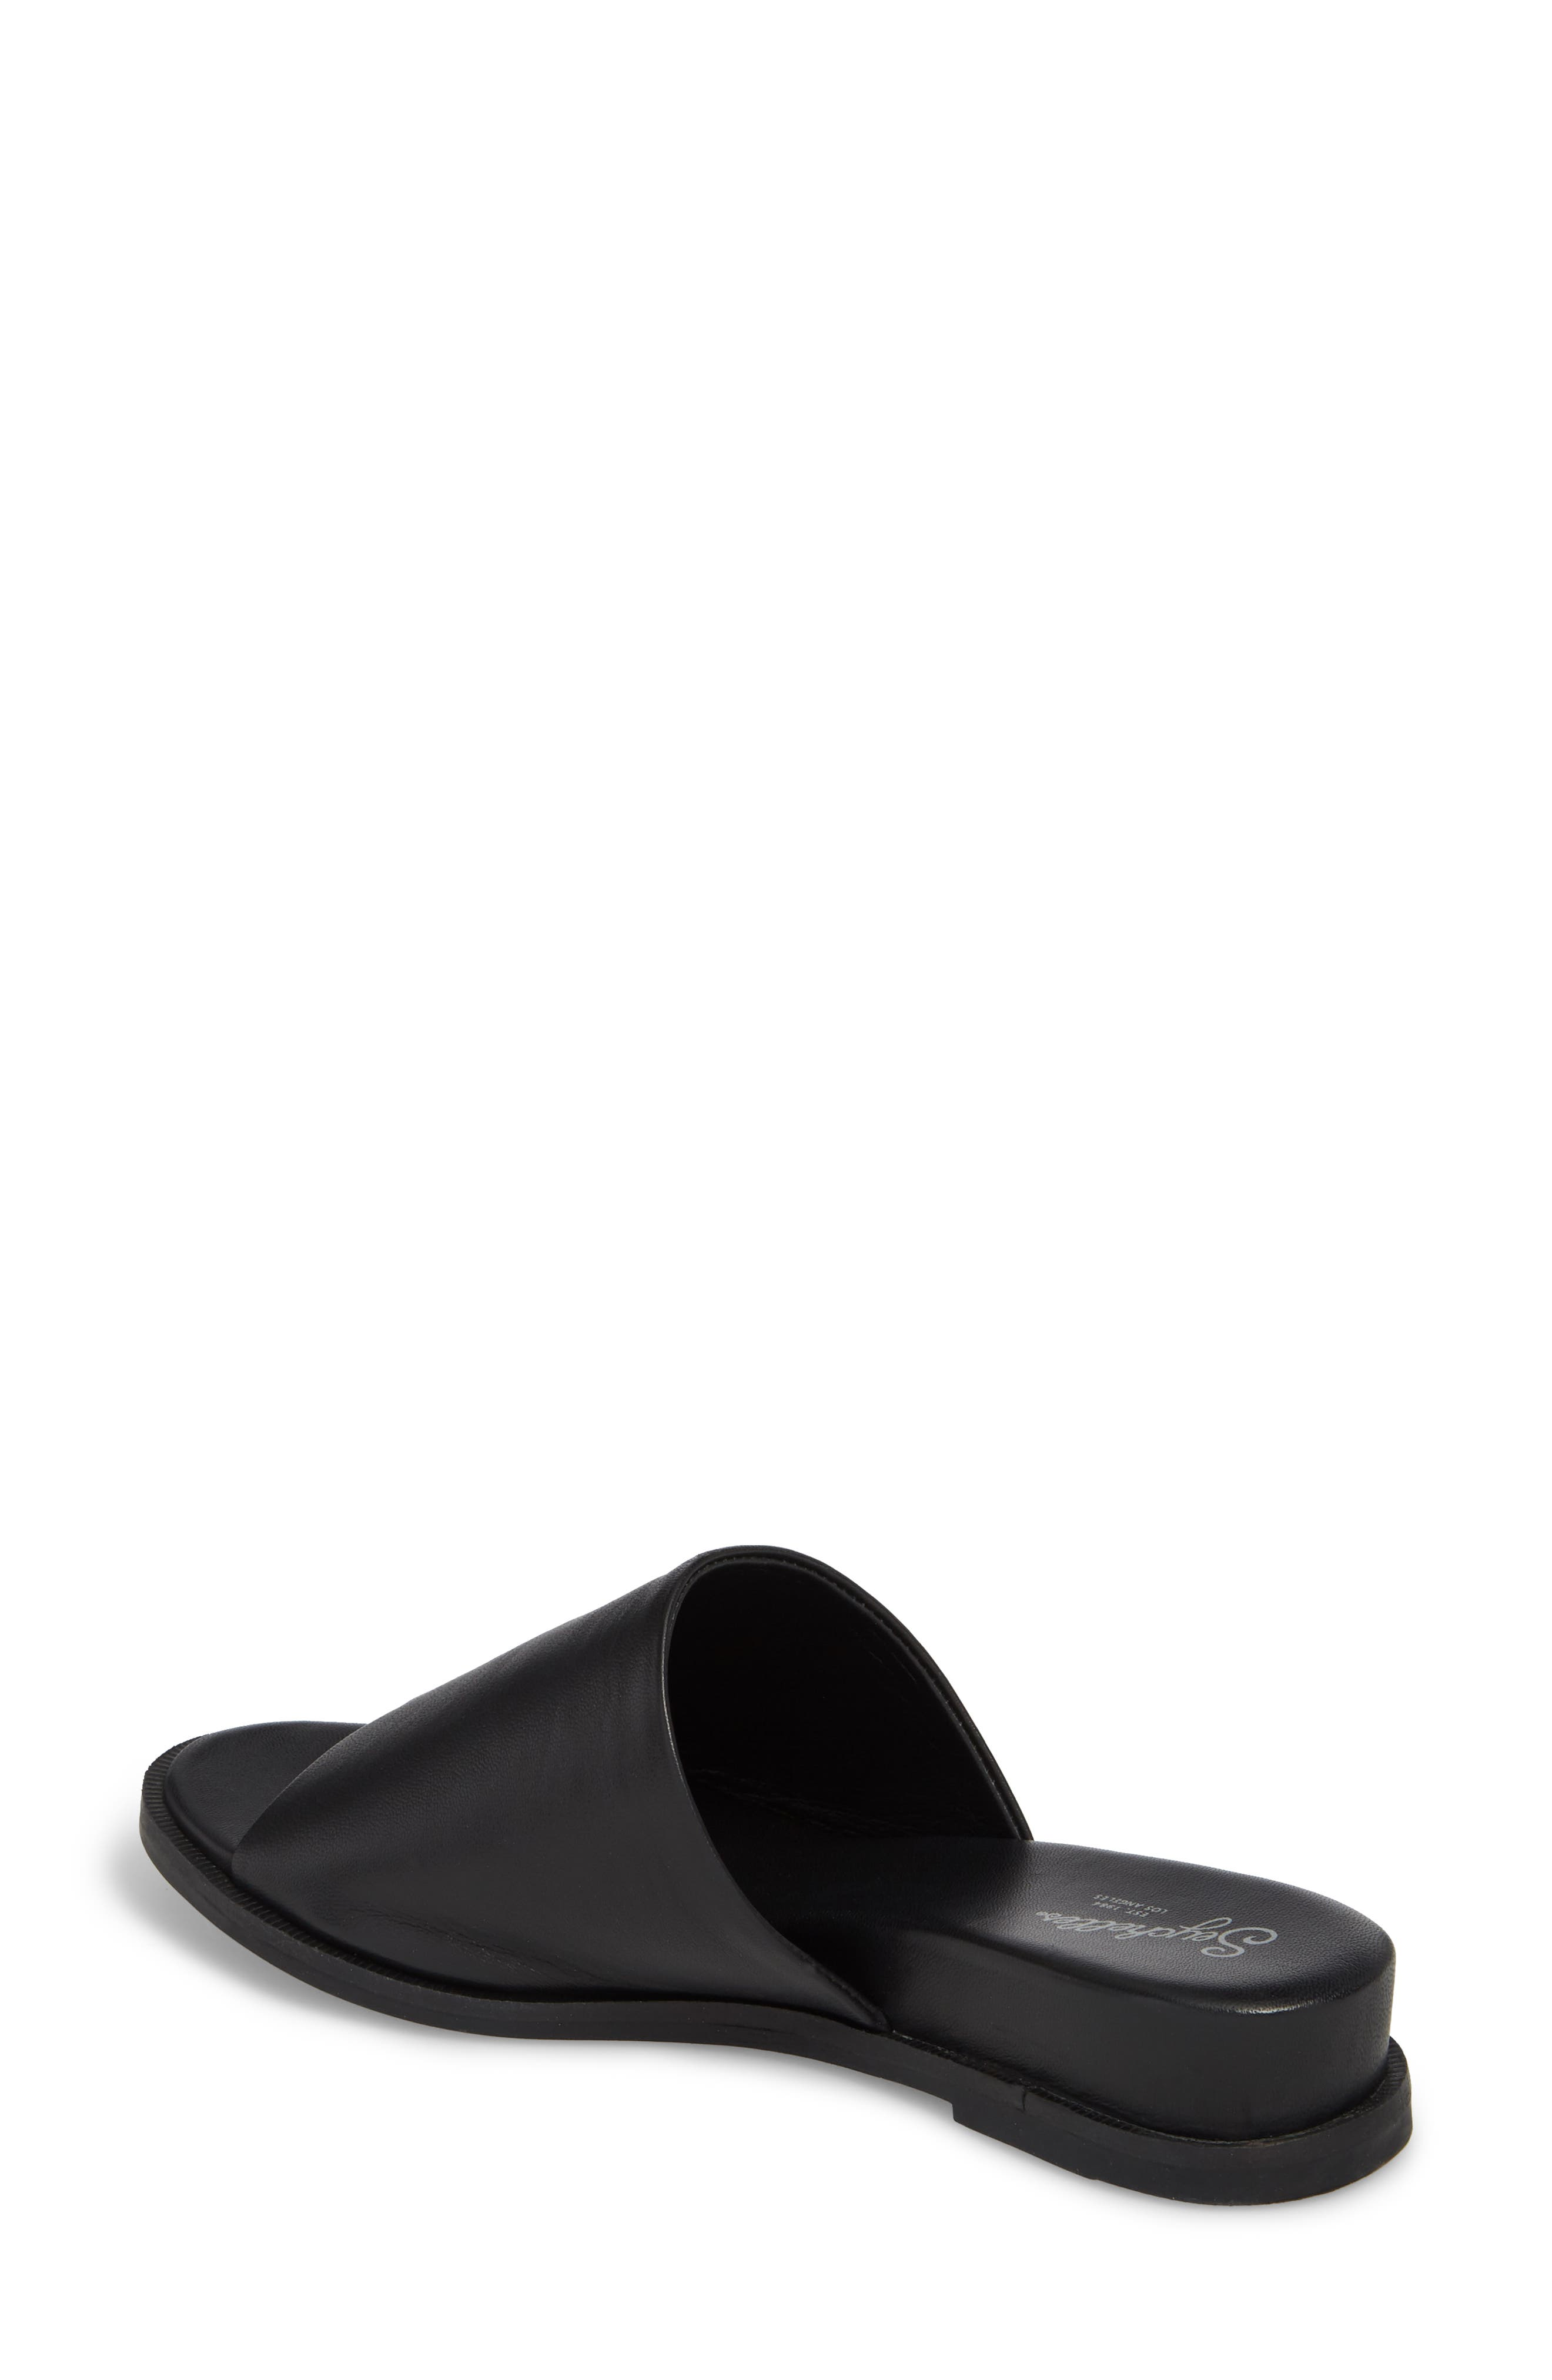 Relaxing Wedge Slide Sandal,                             Alternate thumbnail 2, color,                             001